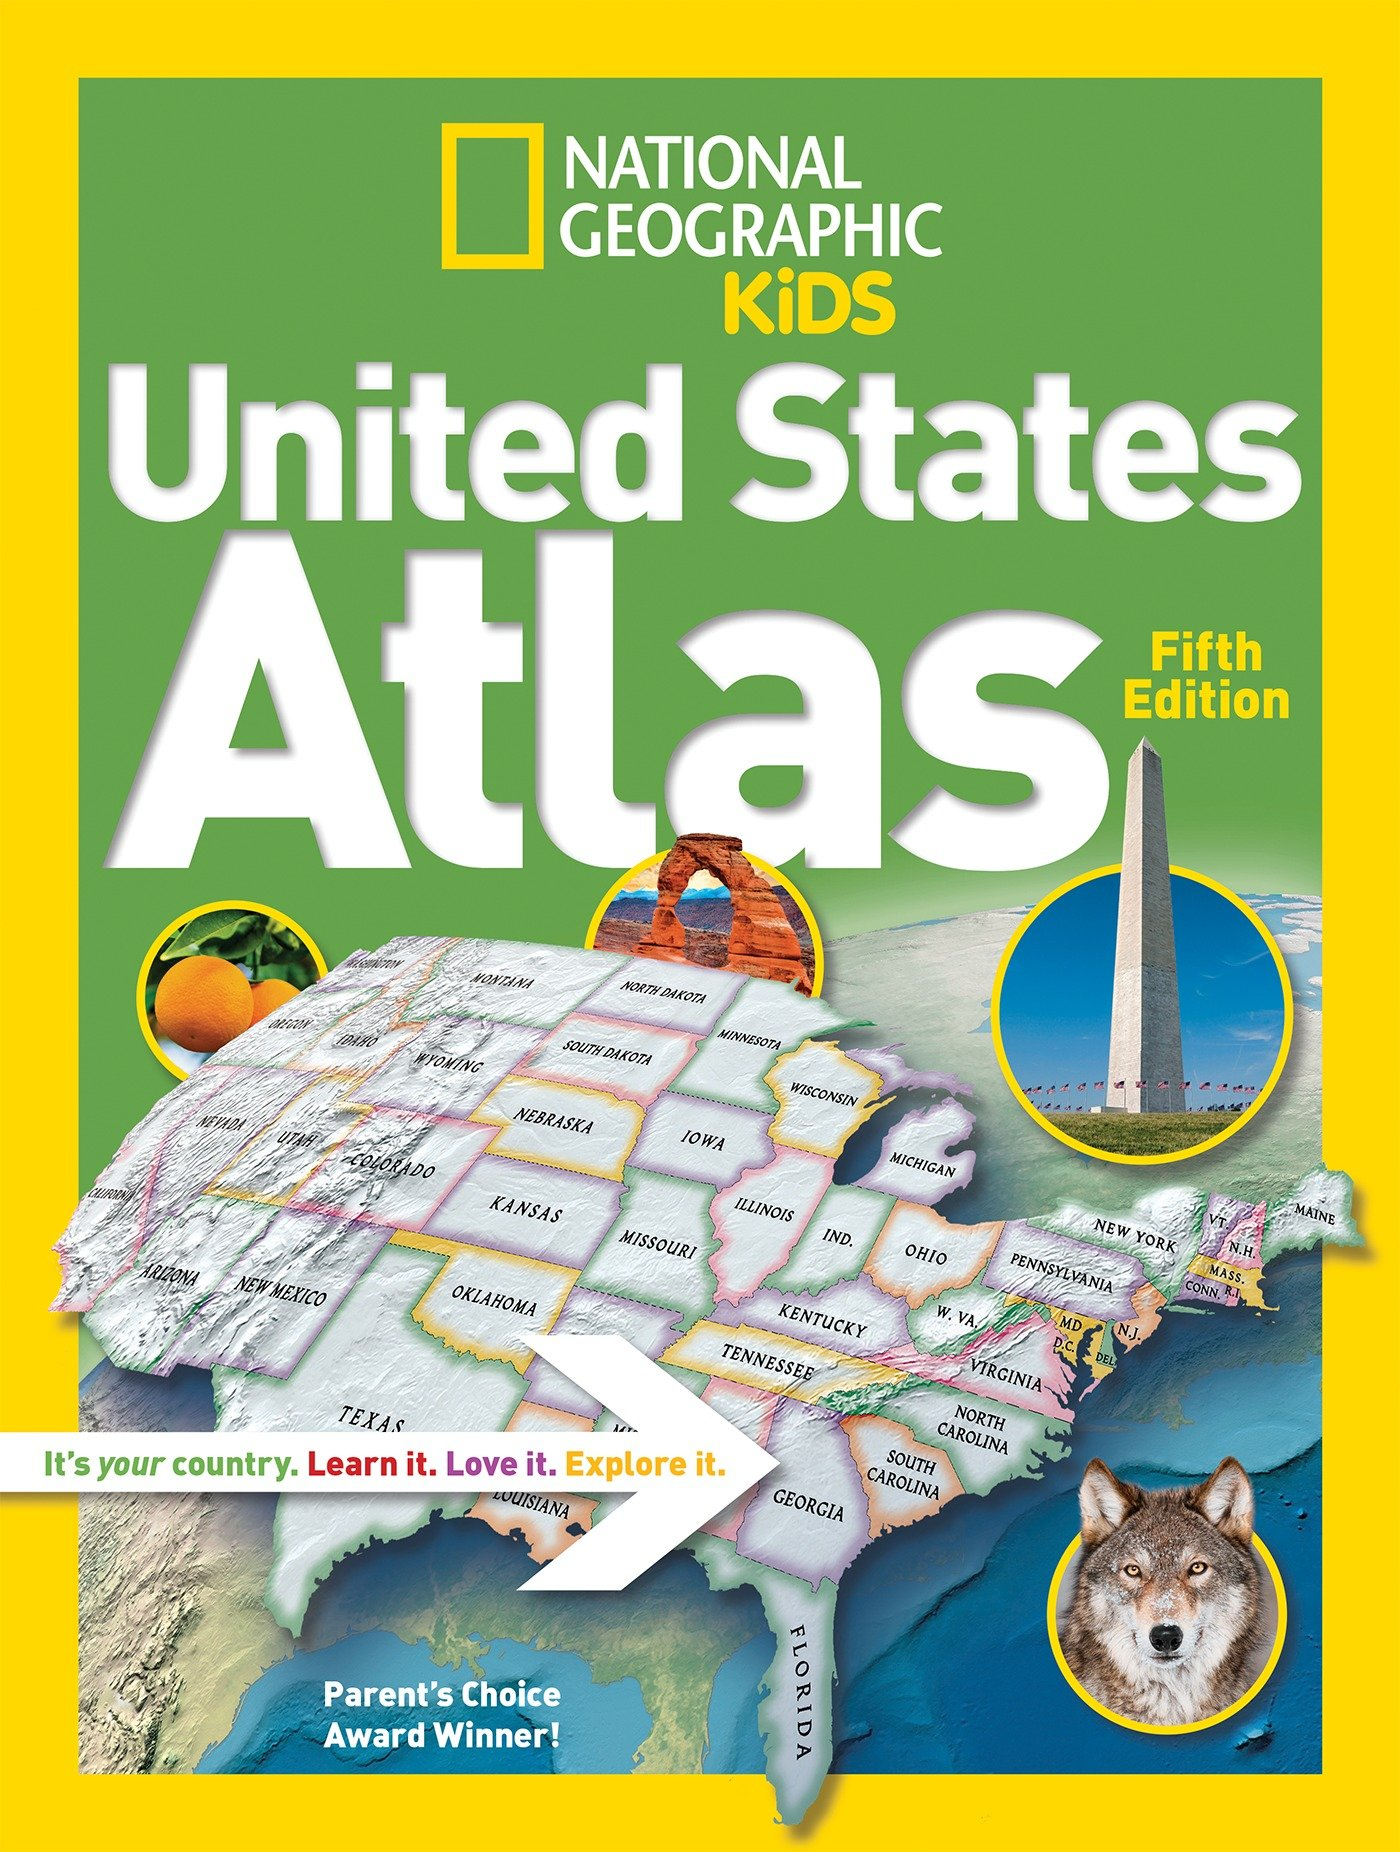 Map Of Georgia For Kids.National Geographic Kids United States Atlas